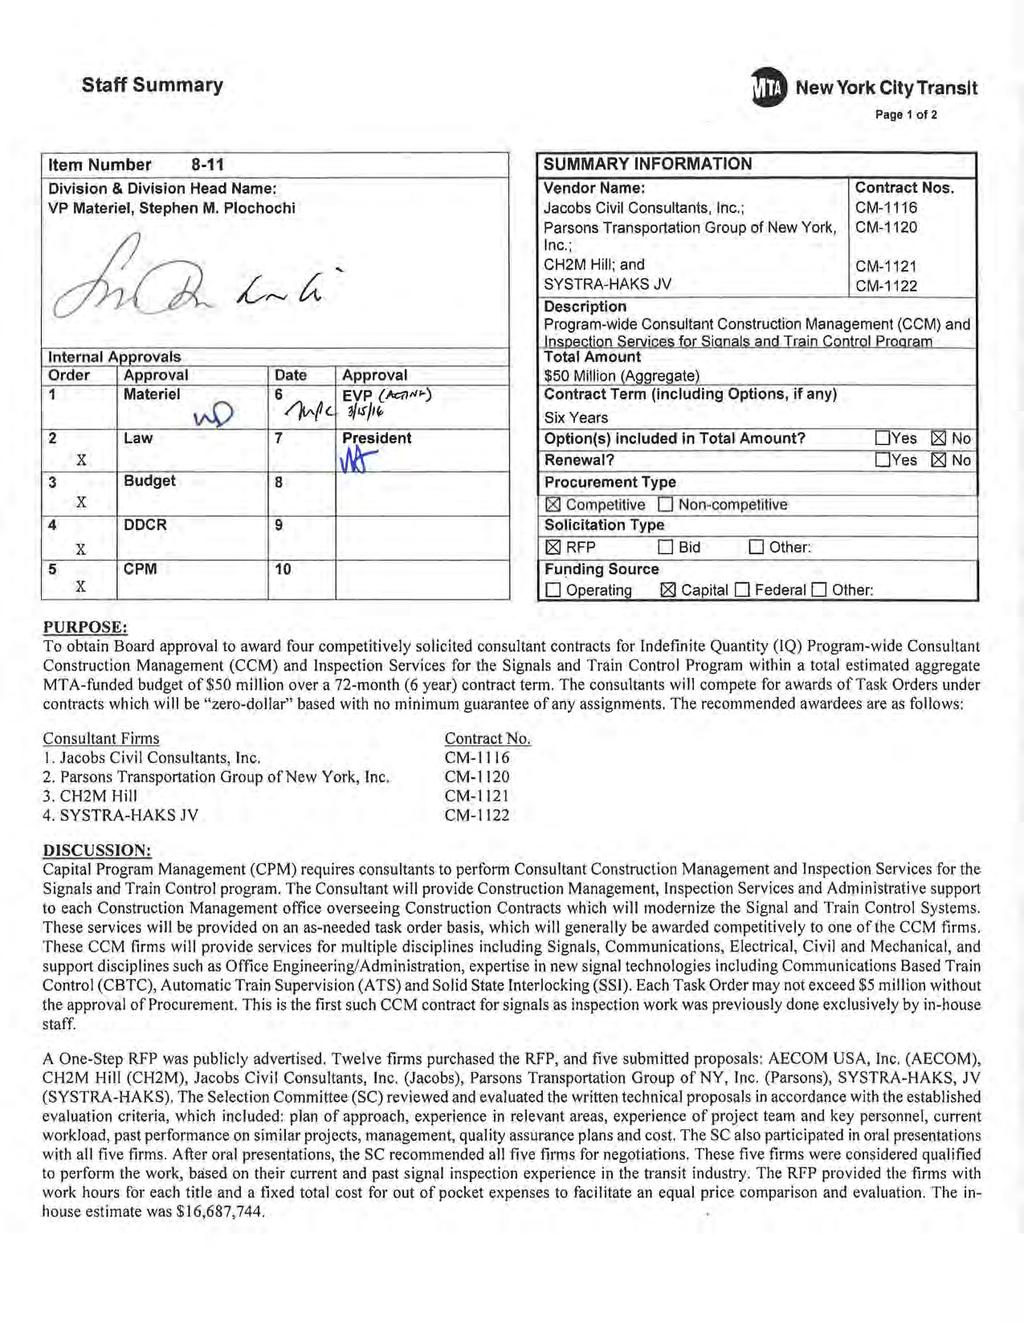 Staff Summary 8 New York City Transit Page 1 of 2 Item Number 8-11 Division & Division Head Name: VP Materiel, Stephen M.